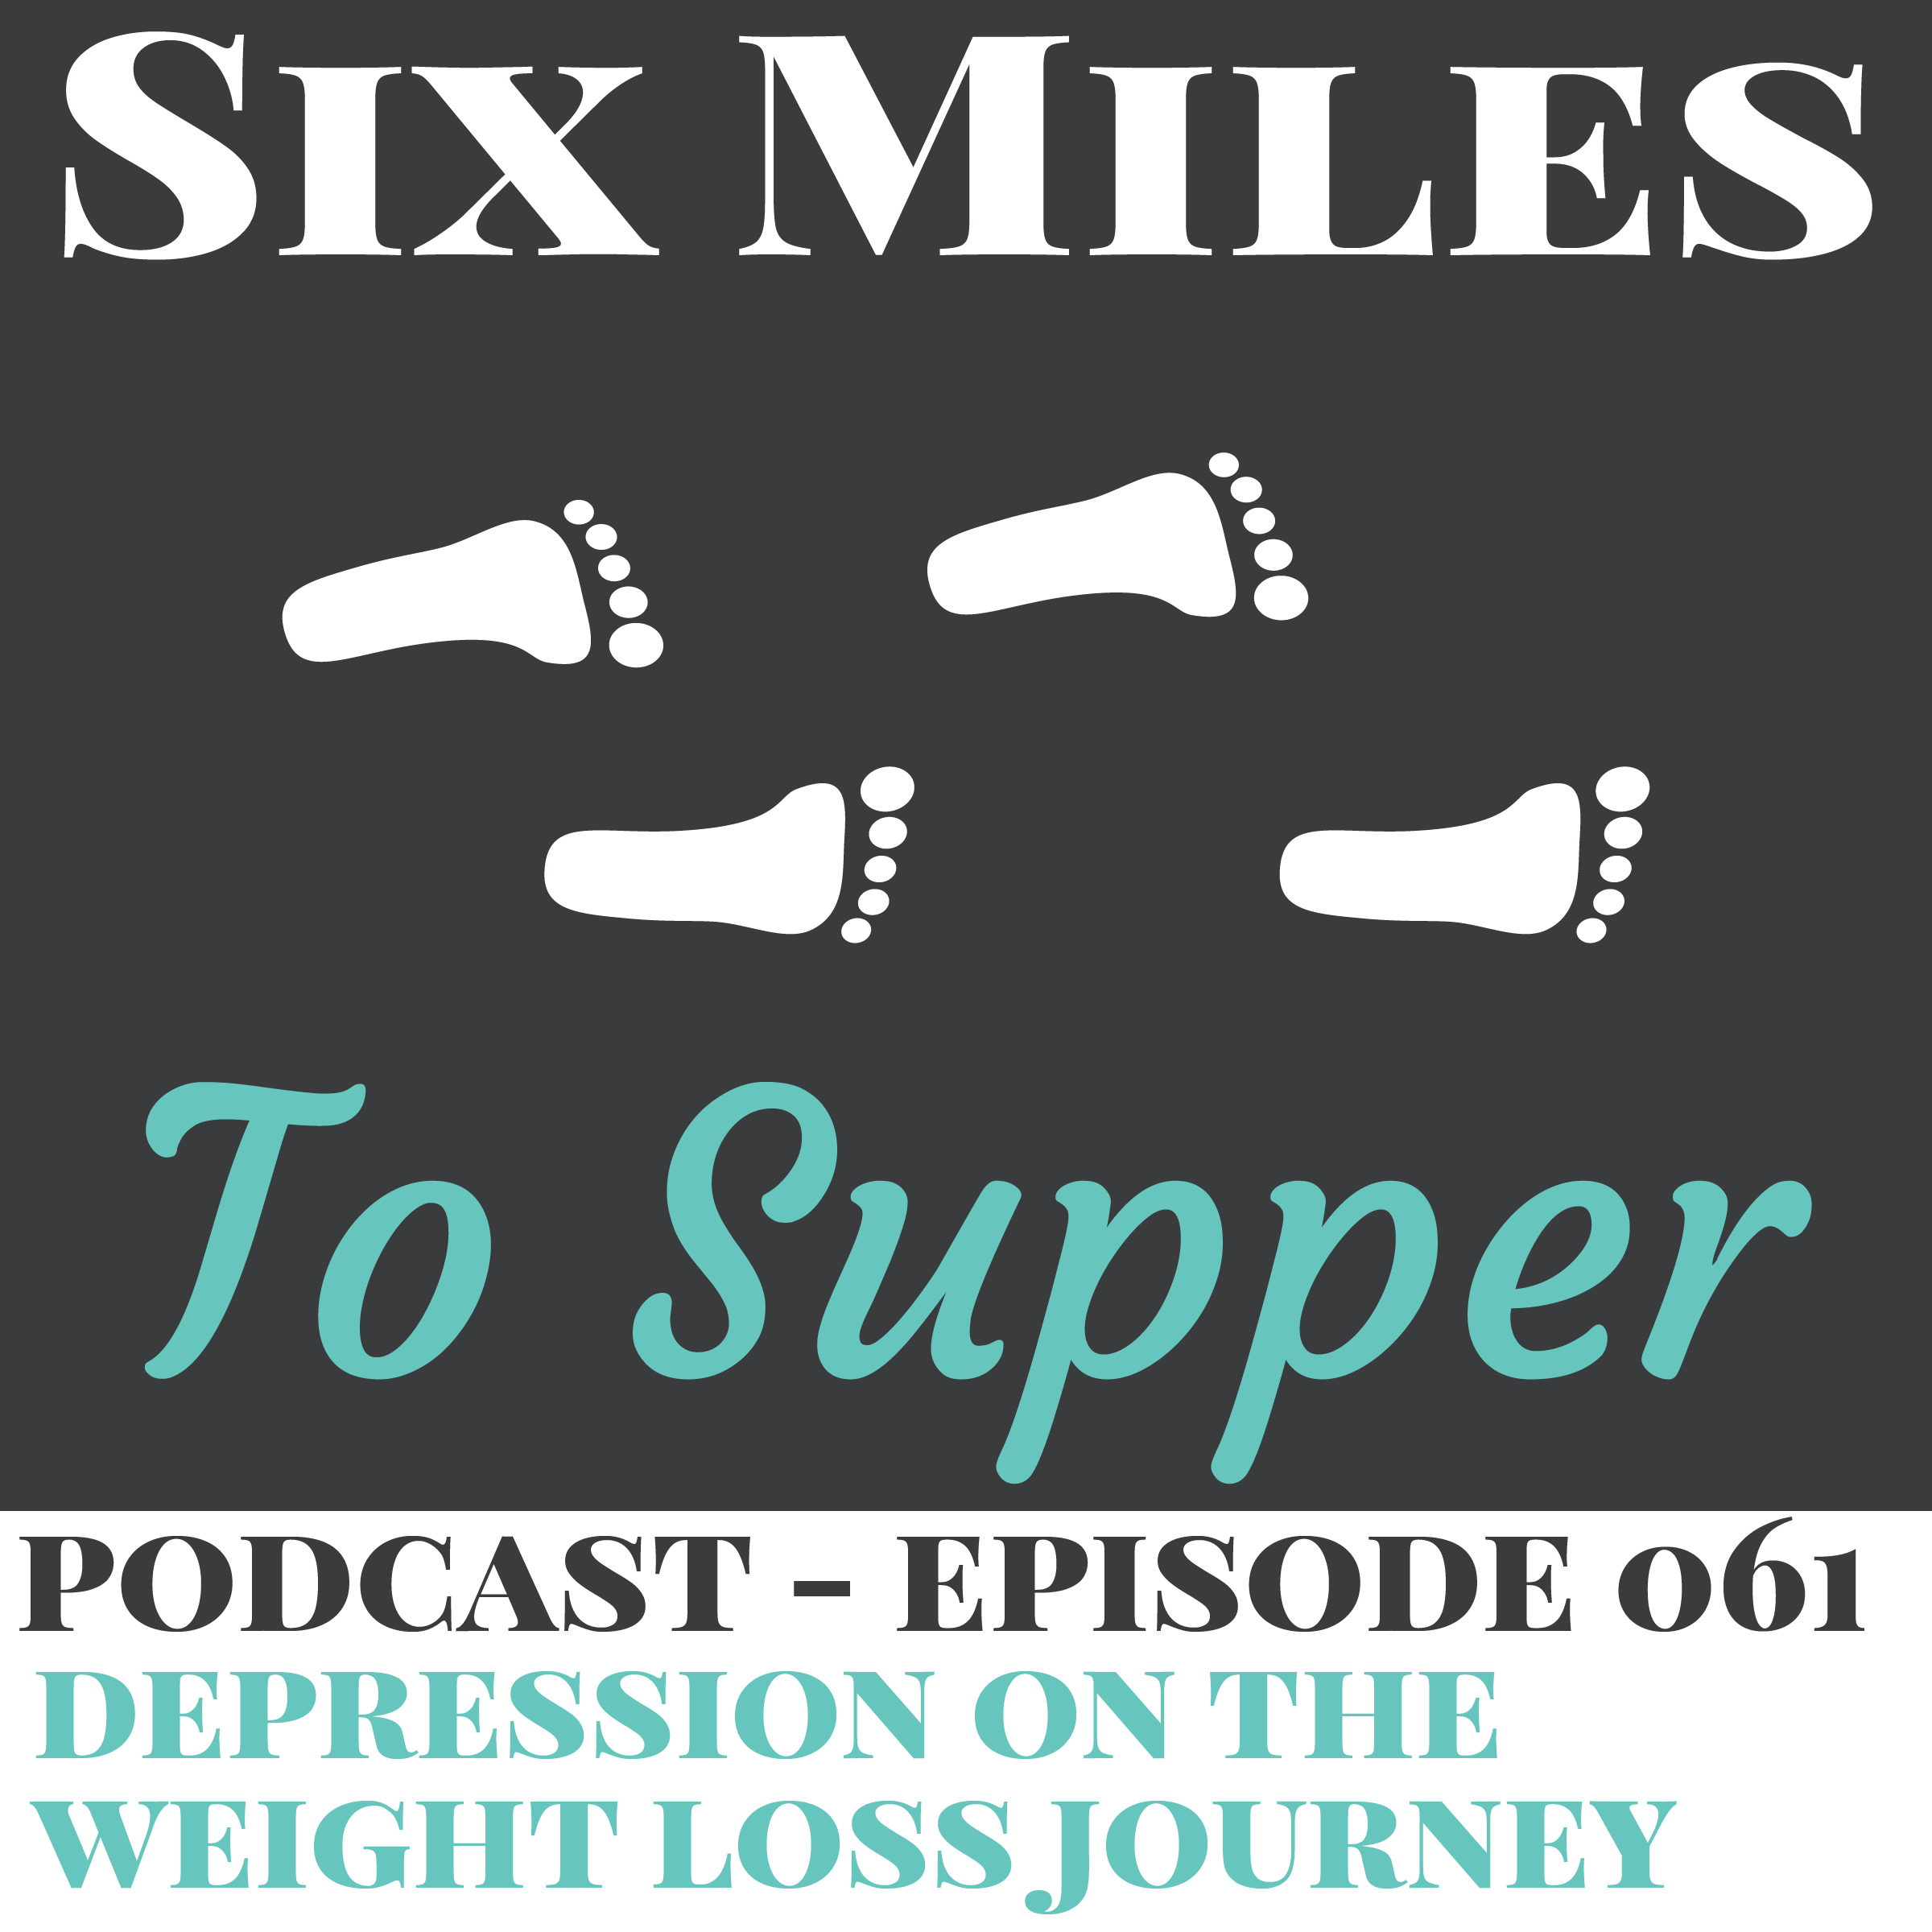 SMTS 061: Dealing With Depression and Down Days on the Weight Loss Journey